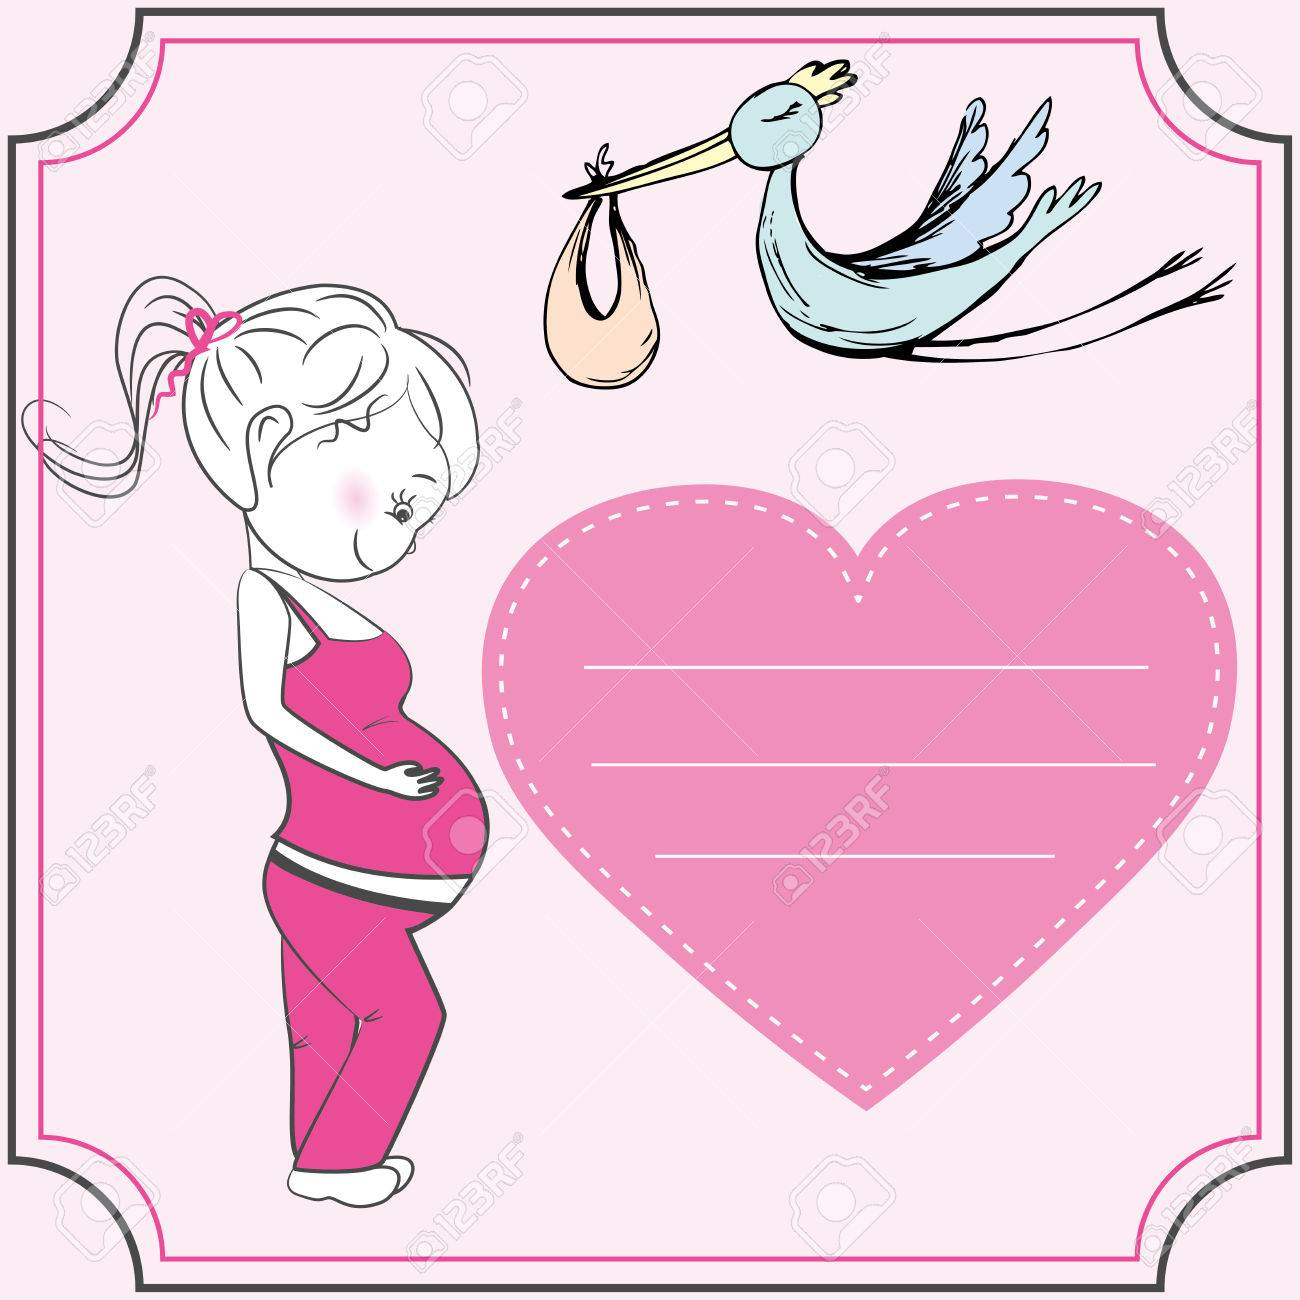 Cartoon Pregnant Woman And Heart Baby Announcement Card Royalty